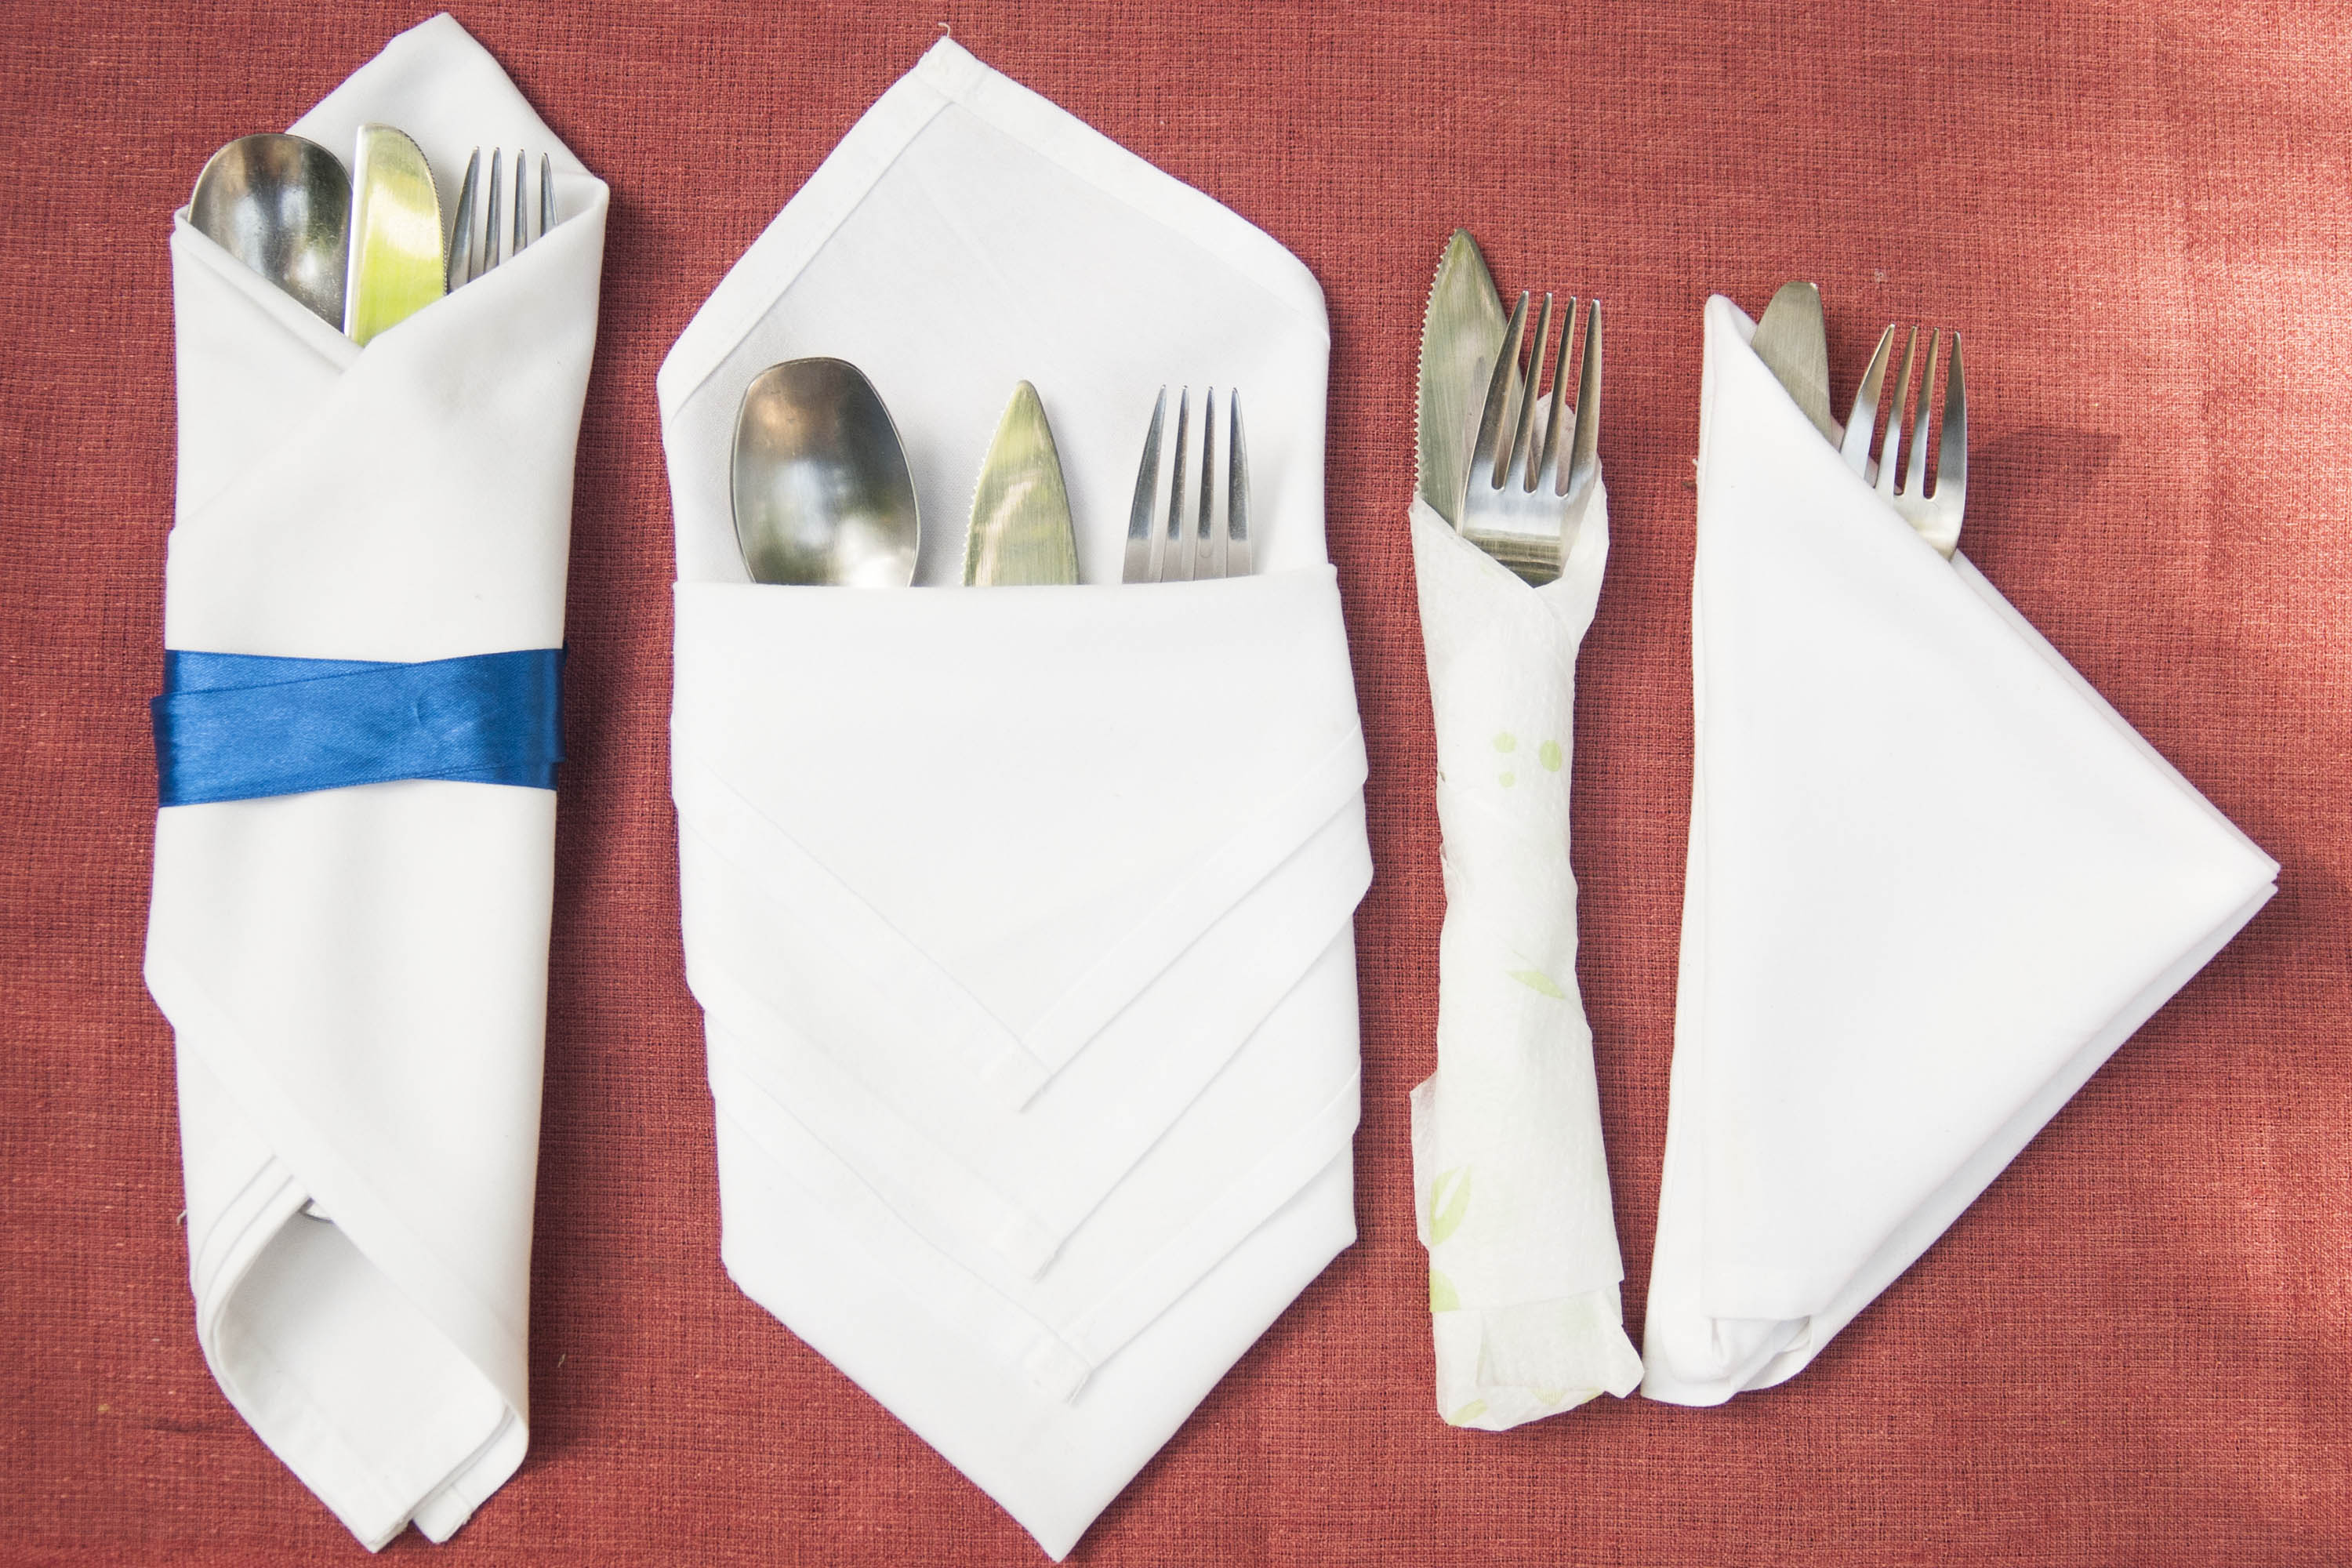 How To Fold Cutlery Into A Napkin